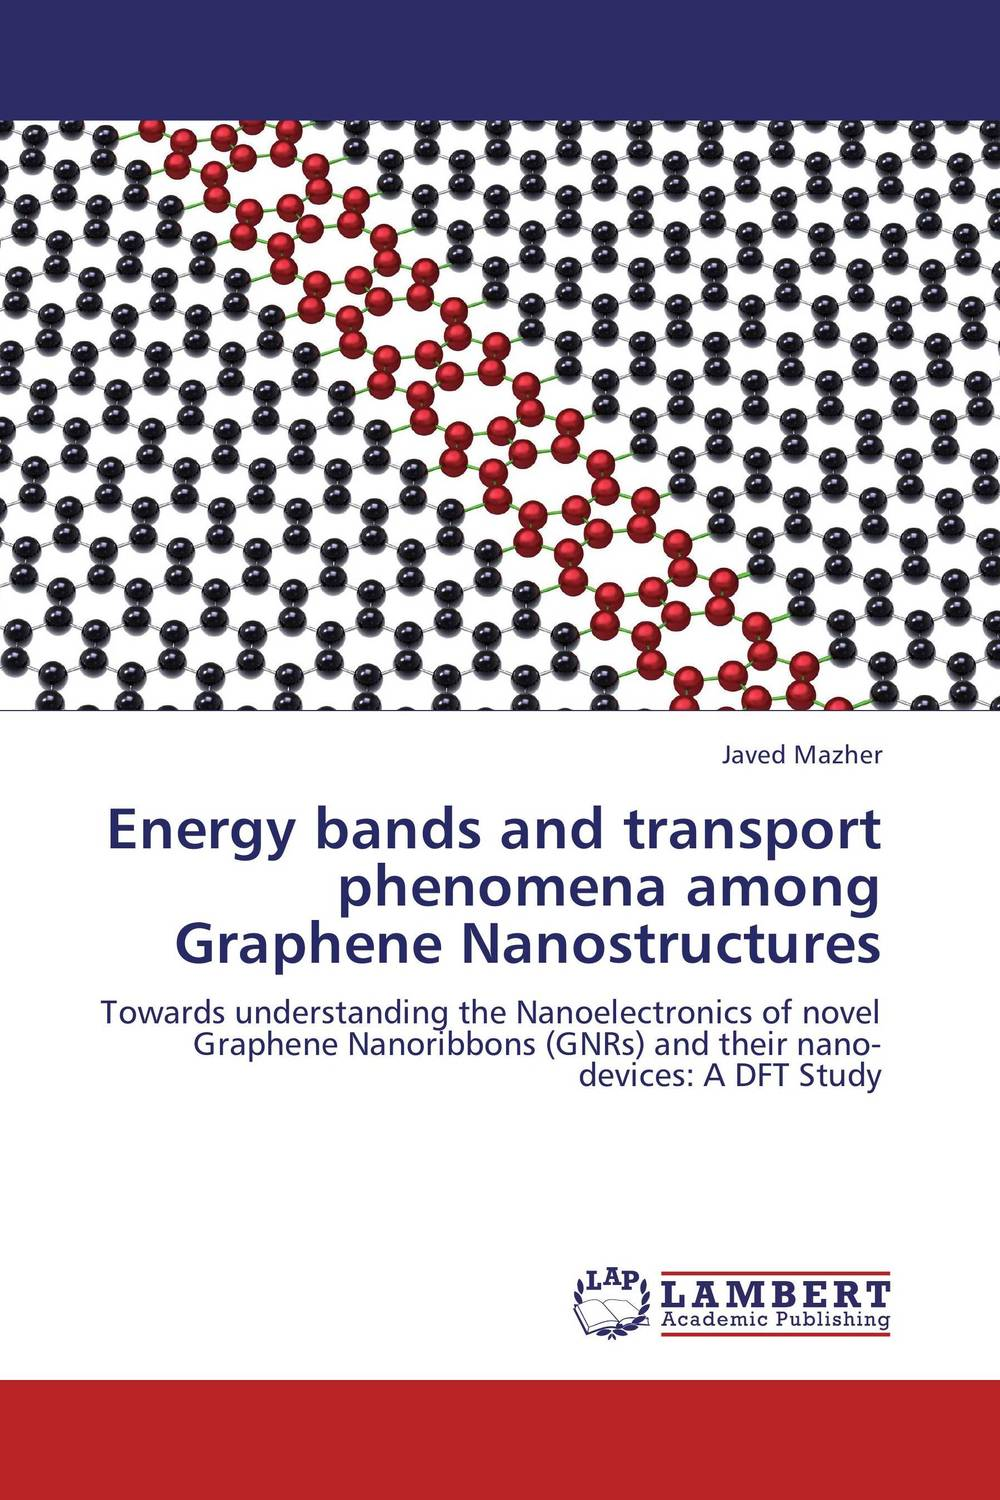 Energy bands and transport phenomena among Graphene Nanostructures happy 1 2015 relogio hg9923